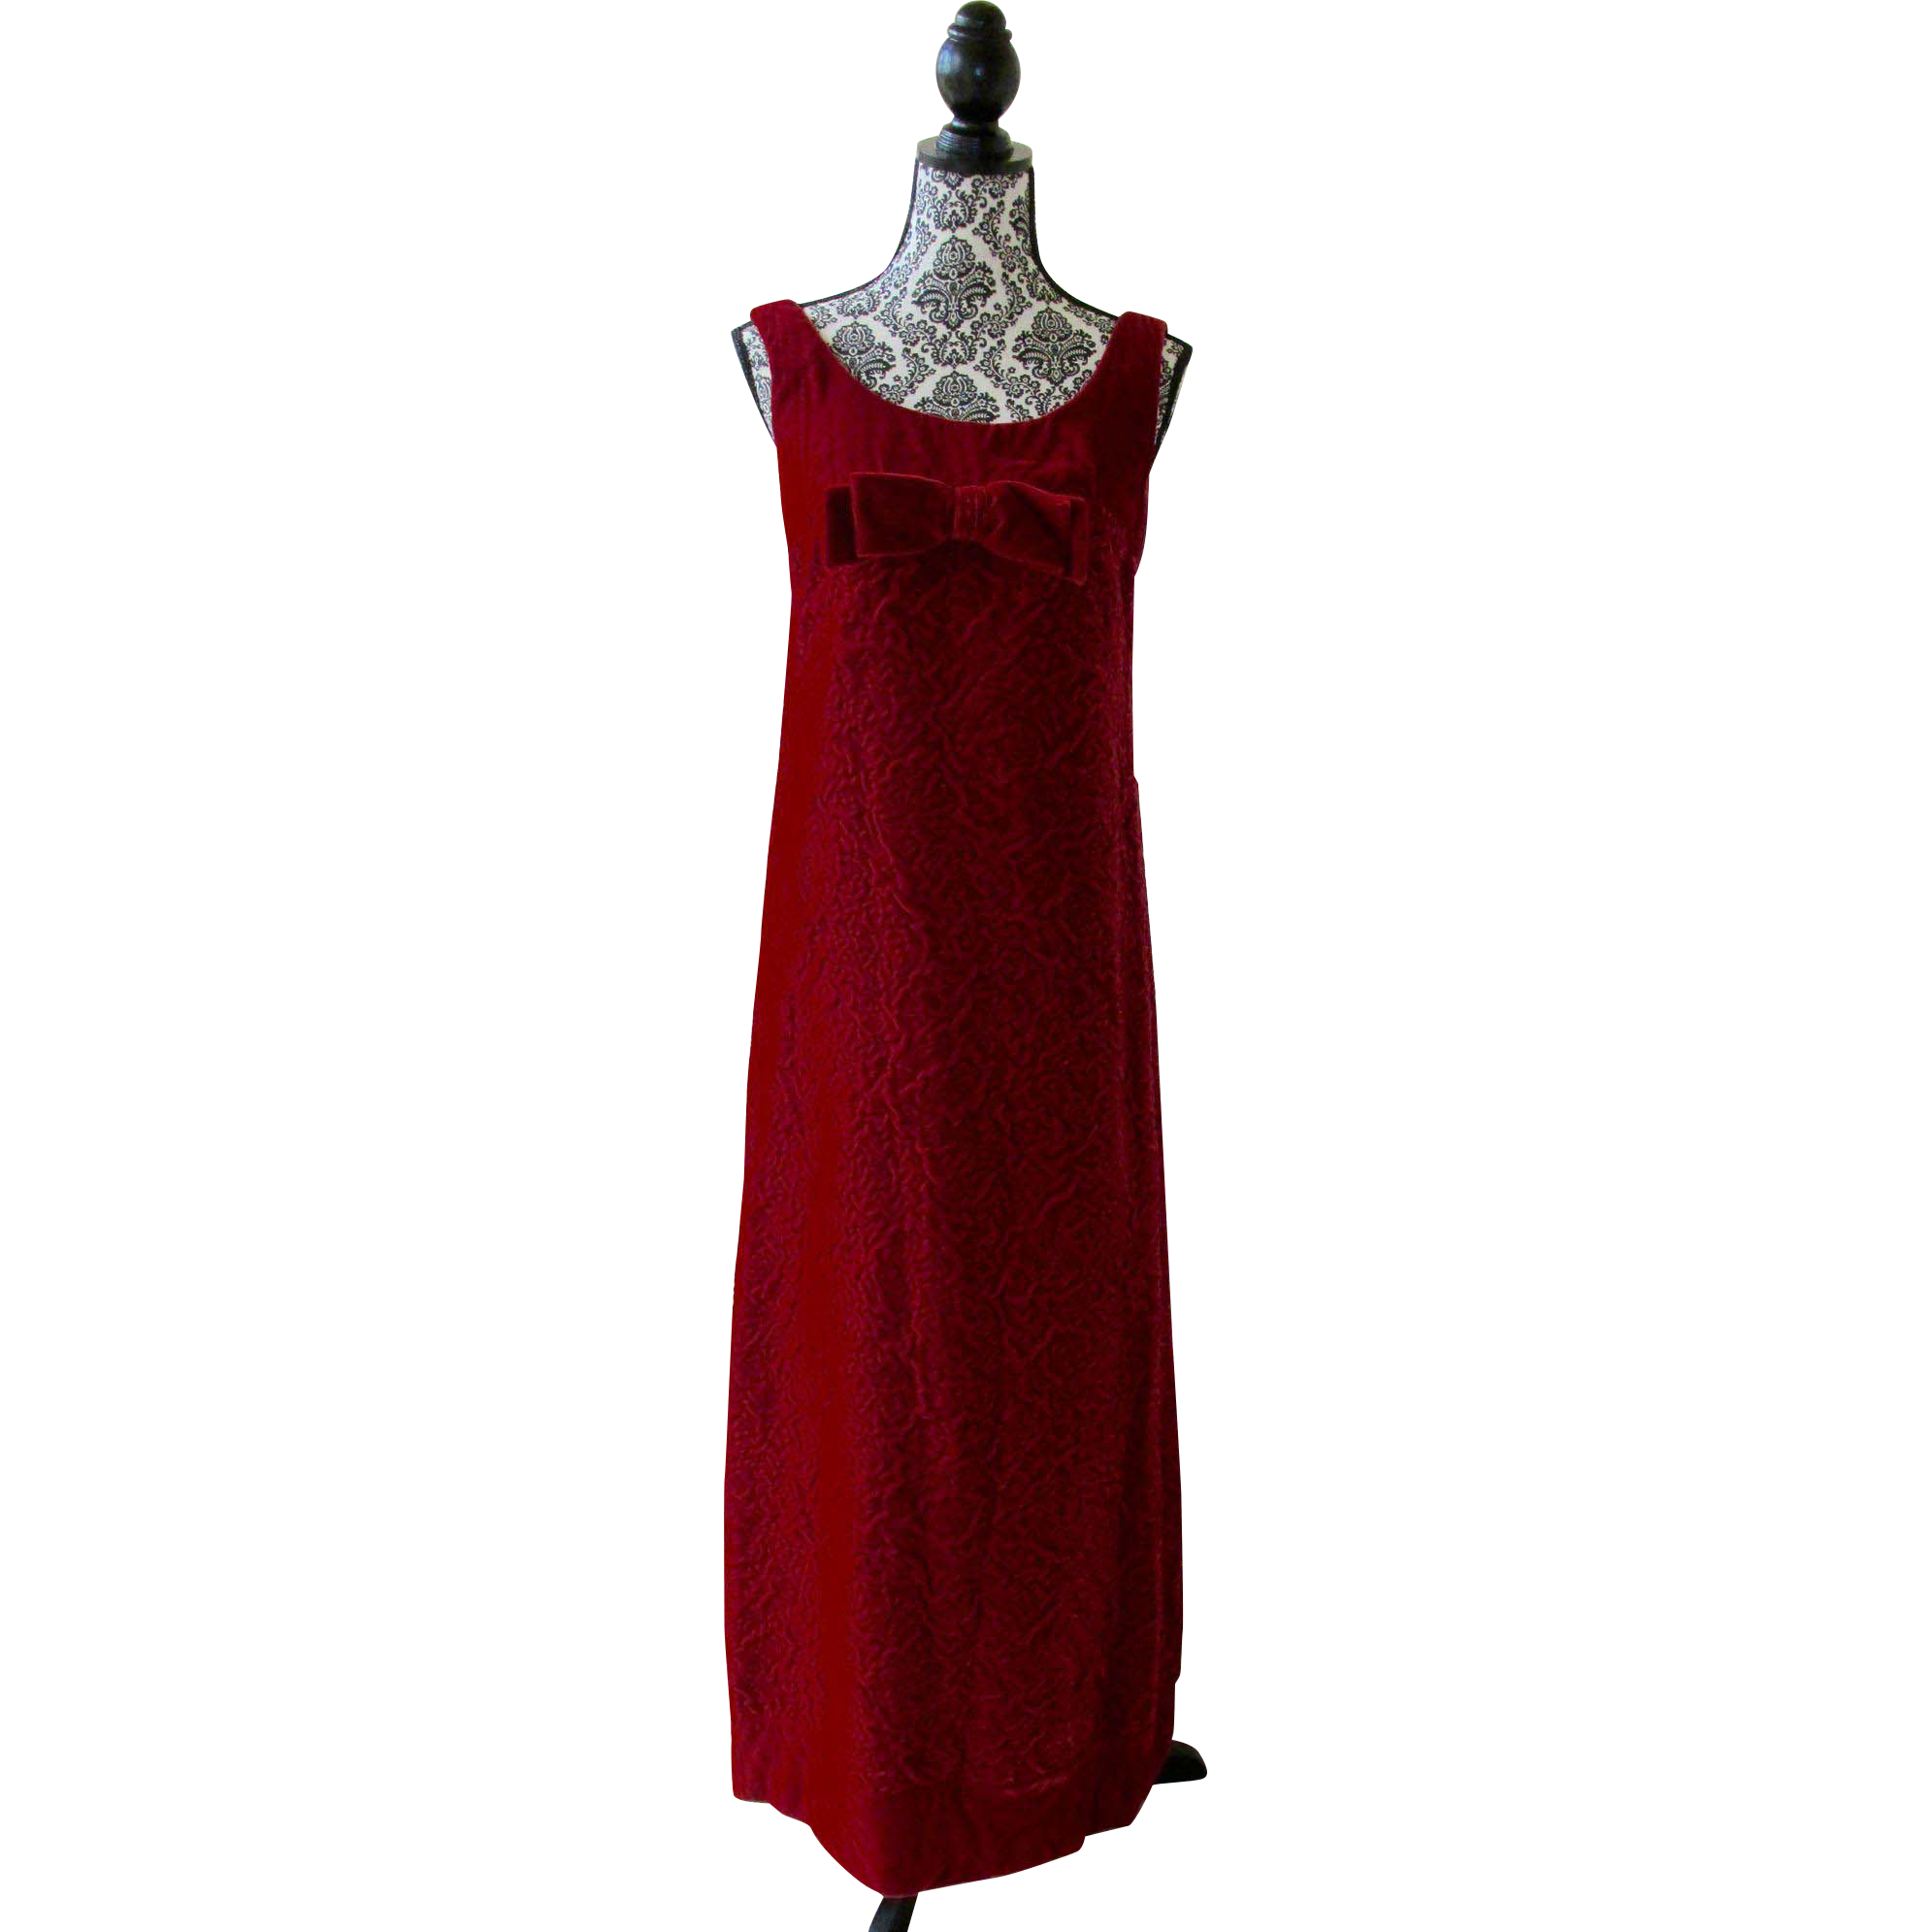 Vintage Designer Labeled GALE MITCHELL 1960s Red Velvet Rose Evening Gown ~ Fabulous for CHRISTMAS or VALENTINE'S DAY!